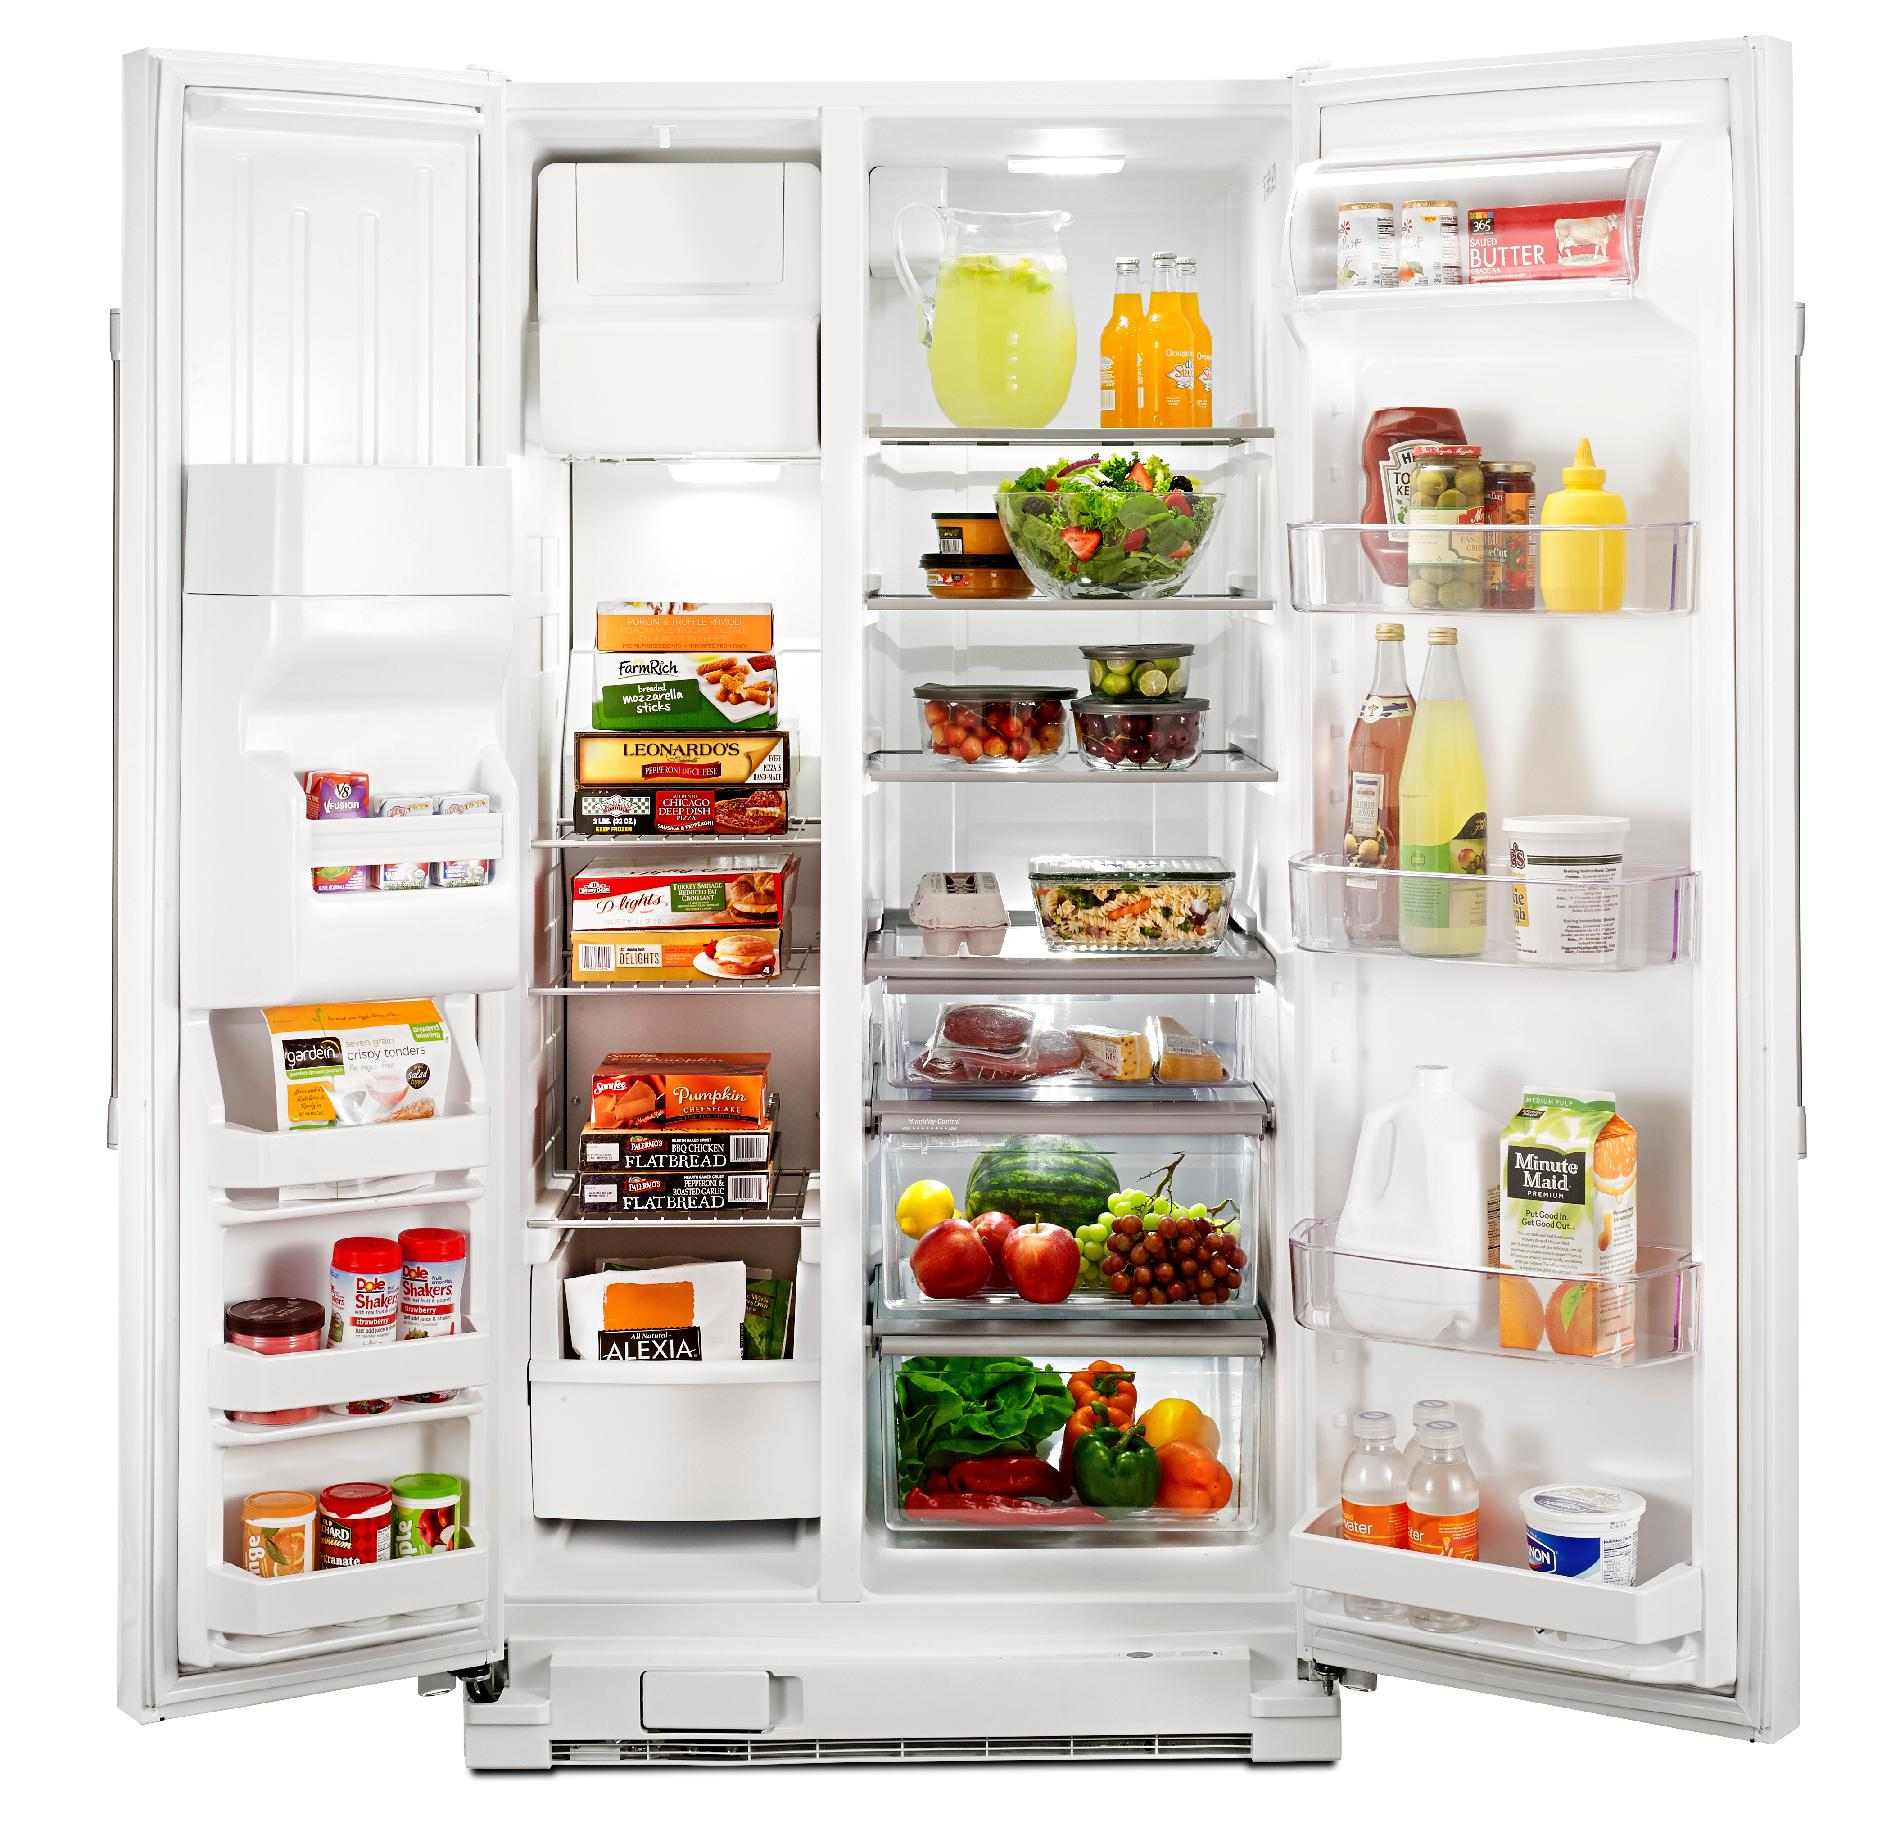 Maytag MSF25D4MDH 24.6 cu. ft. Side-by-Side Refrigerator w/ Ice/Water Dispenser - White